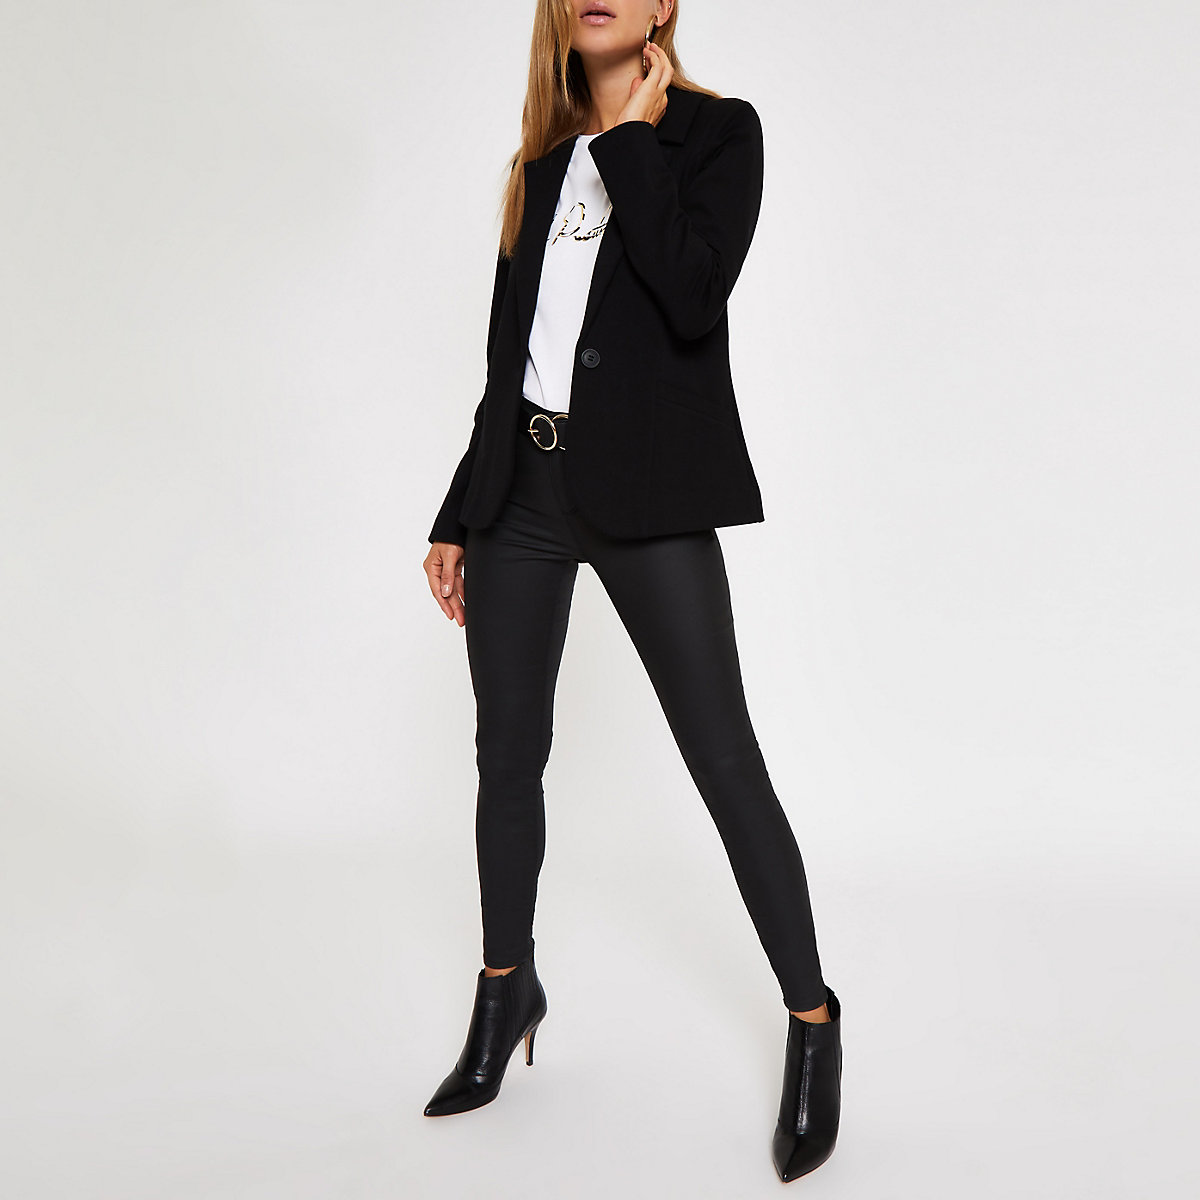 Black long sleeve fitted knit blazer